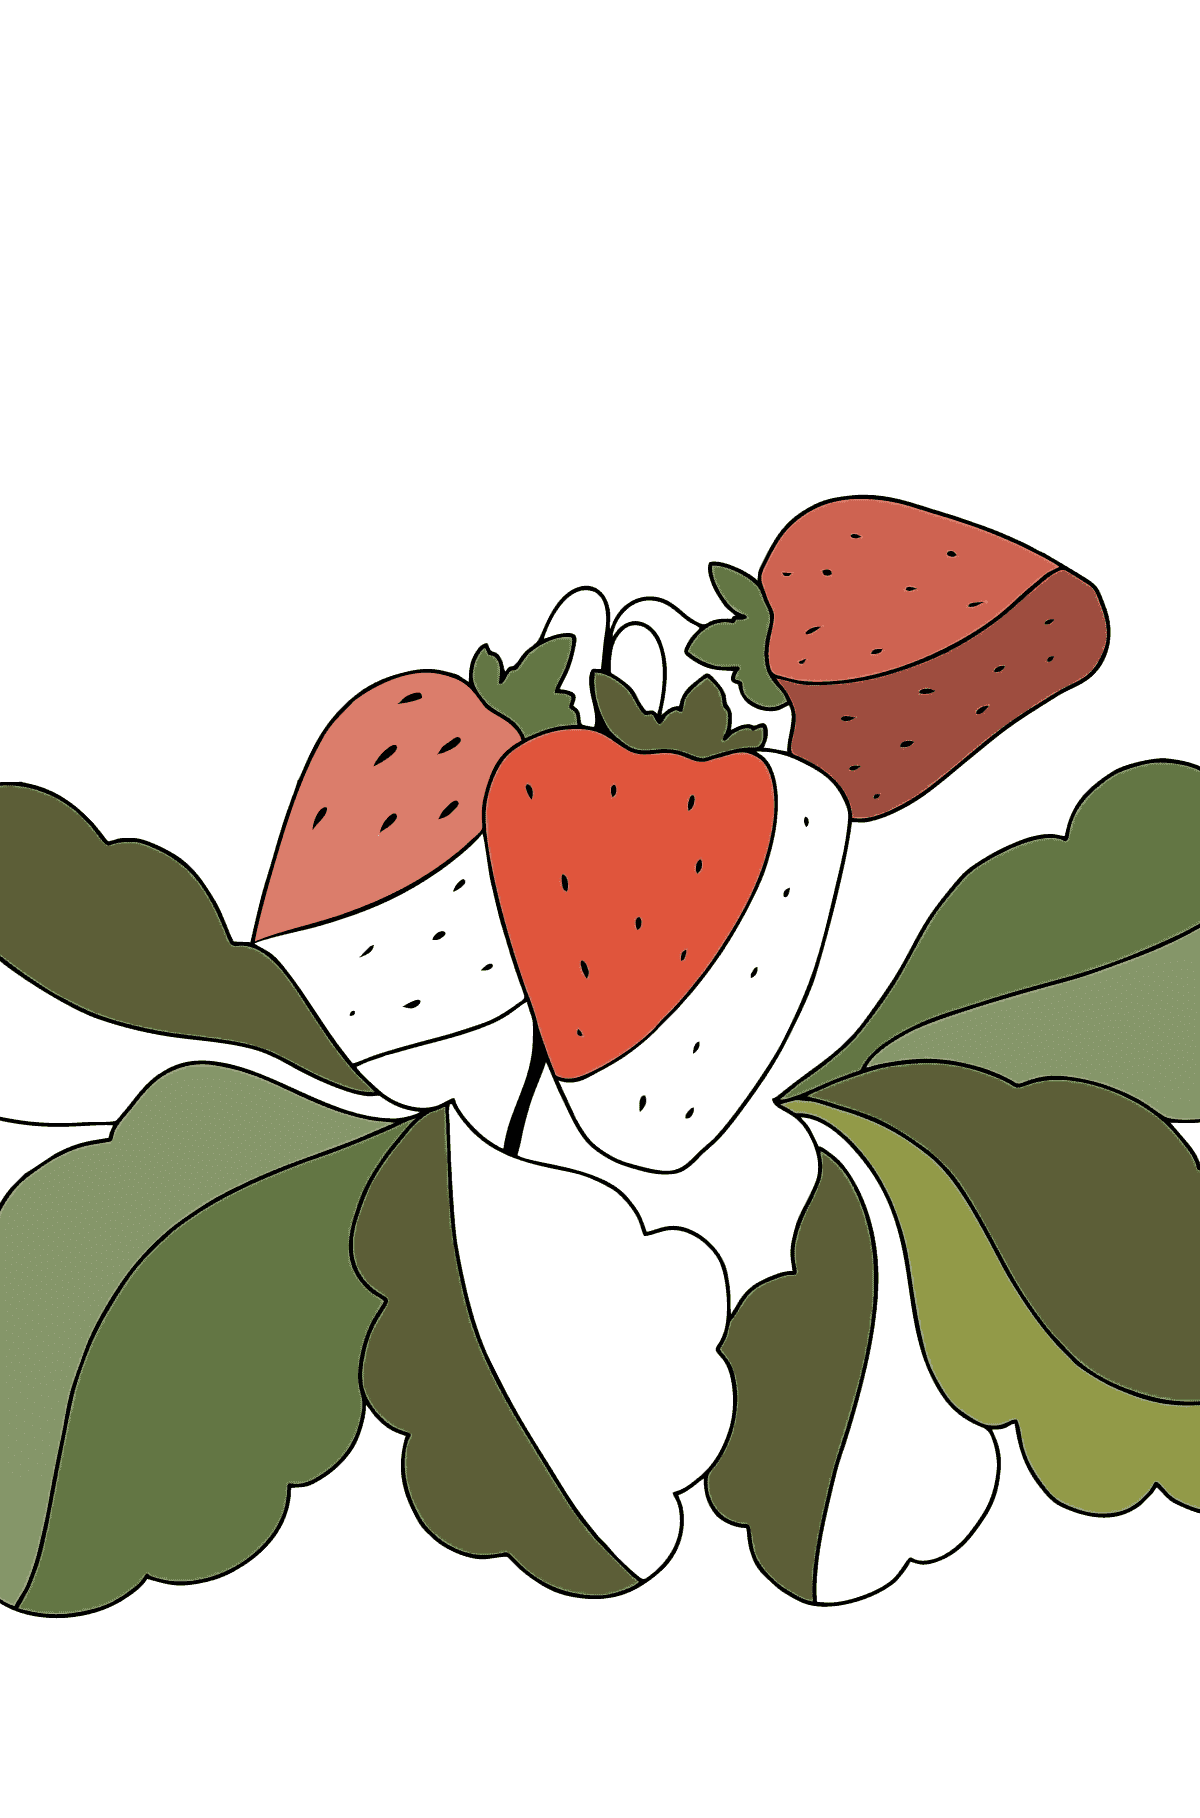 Summer Coloring Page - Strawberries are Ready on the Garden Bed - Coloring Pages for Children